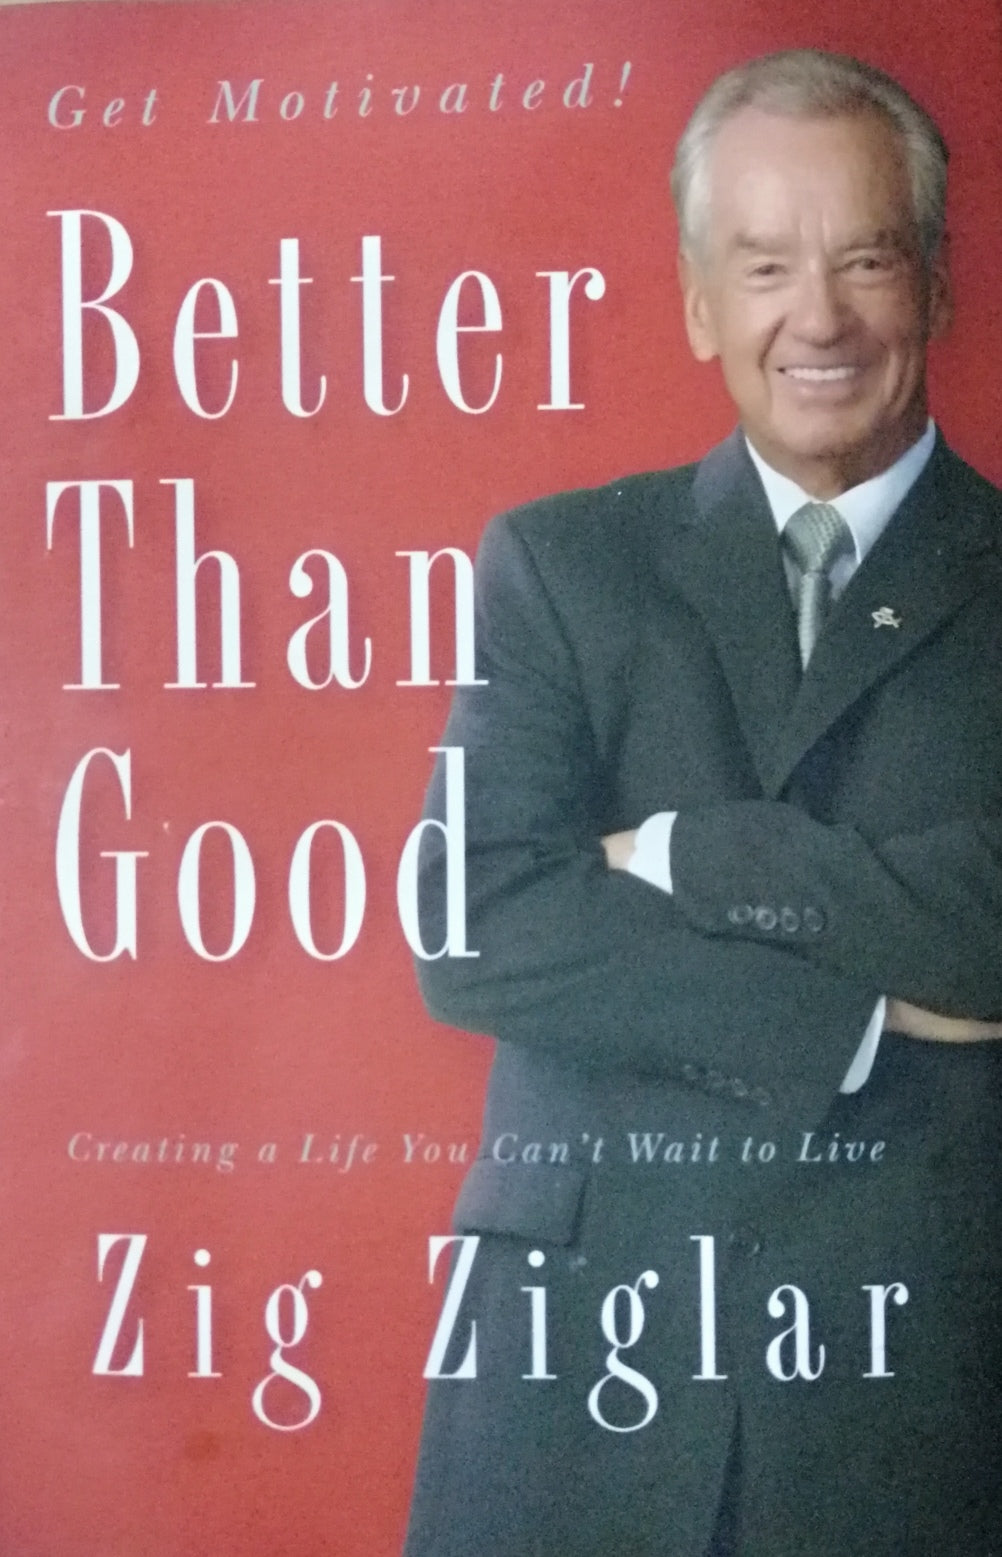 Better than good by: Zig Ziglar